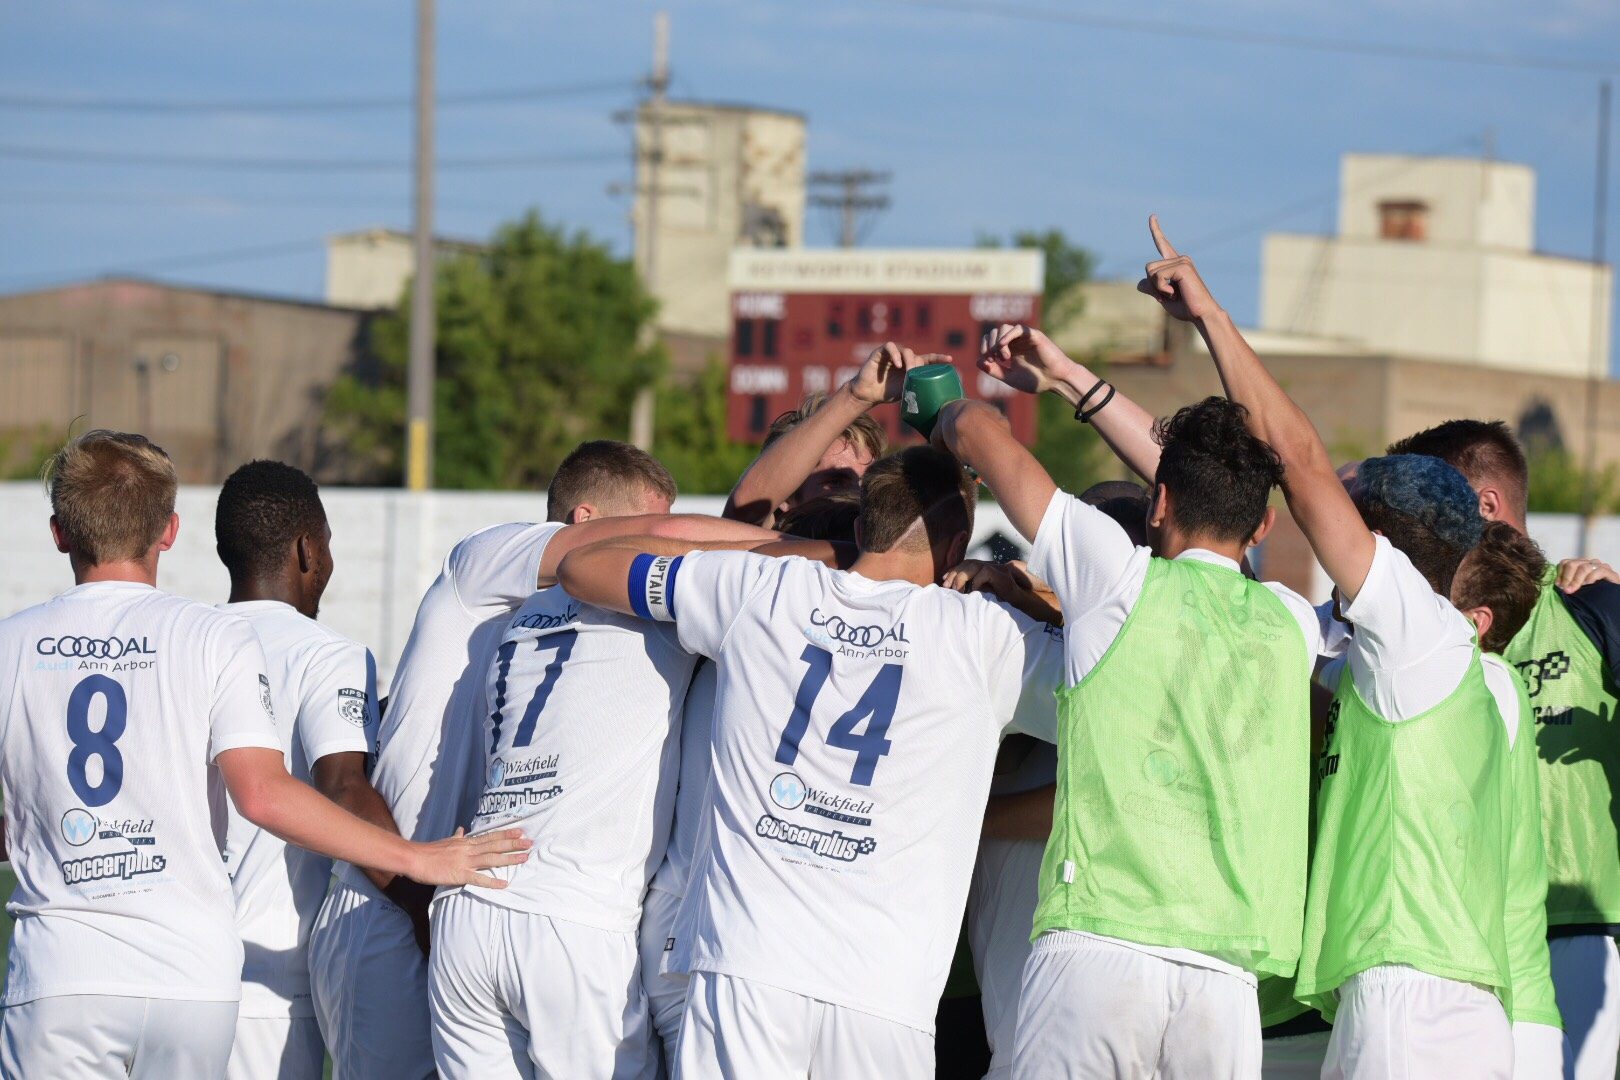 The team celebrates the lone goal of the match which came in stoppage time (90'+)